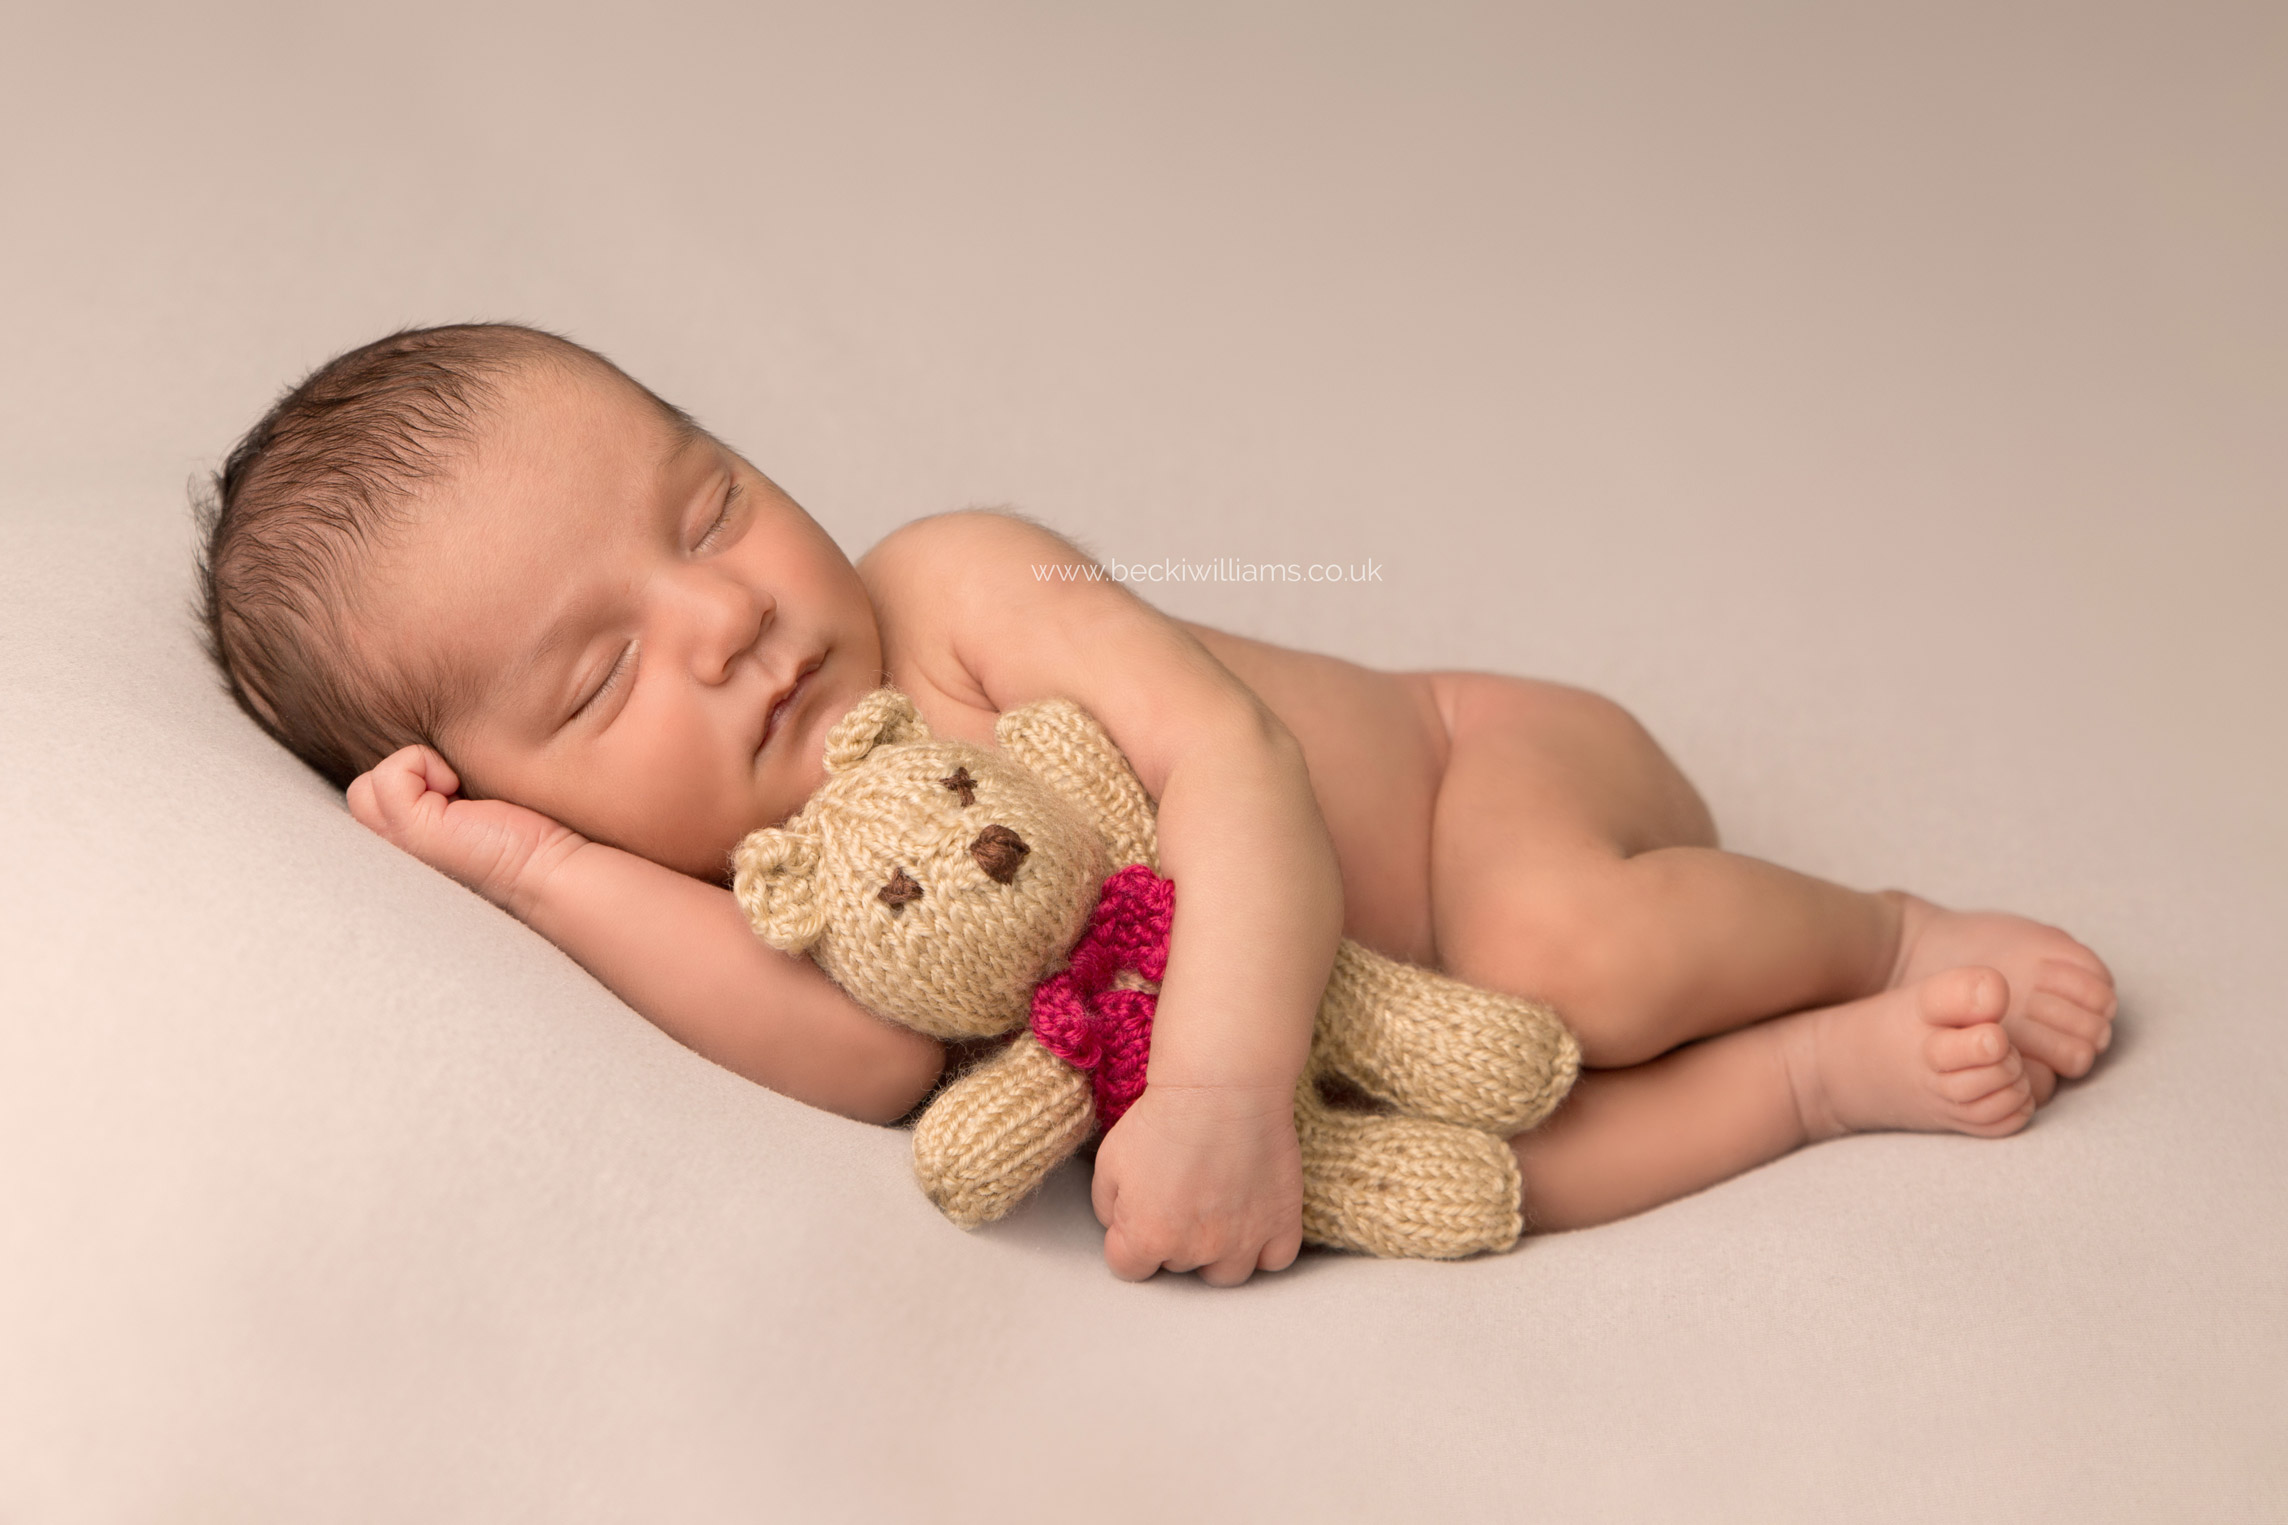 newborn baby boy asleep on his side cuddling a teddy bear for his newborn photo shoot in hemel hempstead